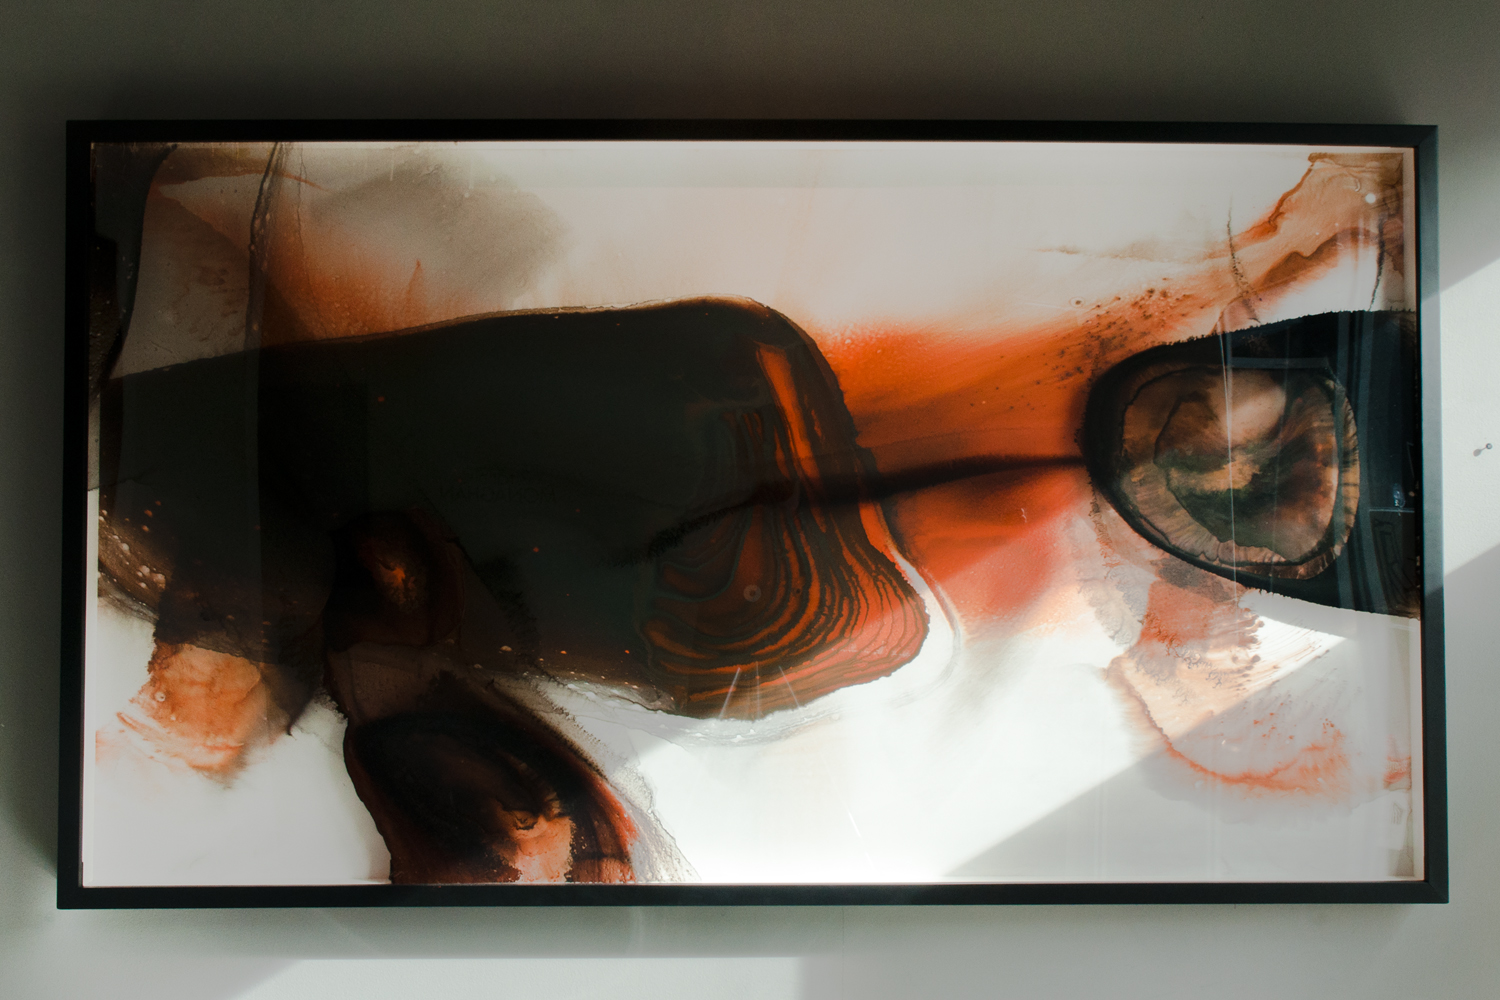 Paleolithic, sumi ink and watercolor on glass and gesso panel, 66 x 37 inches, ERO 083G